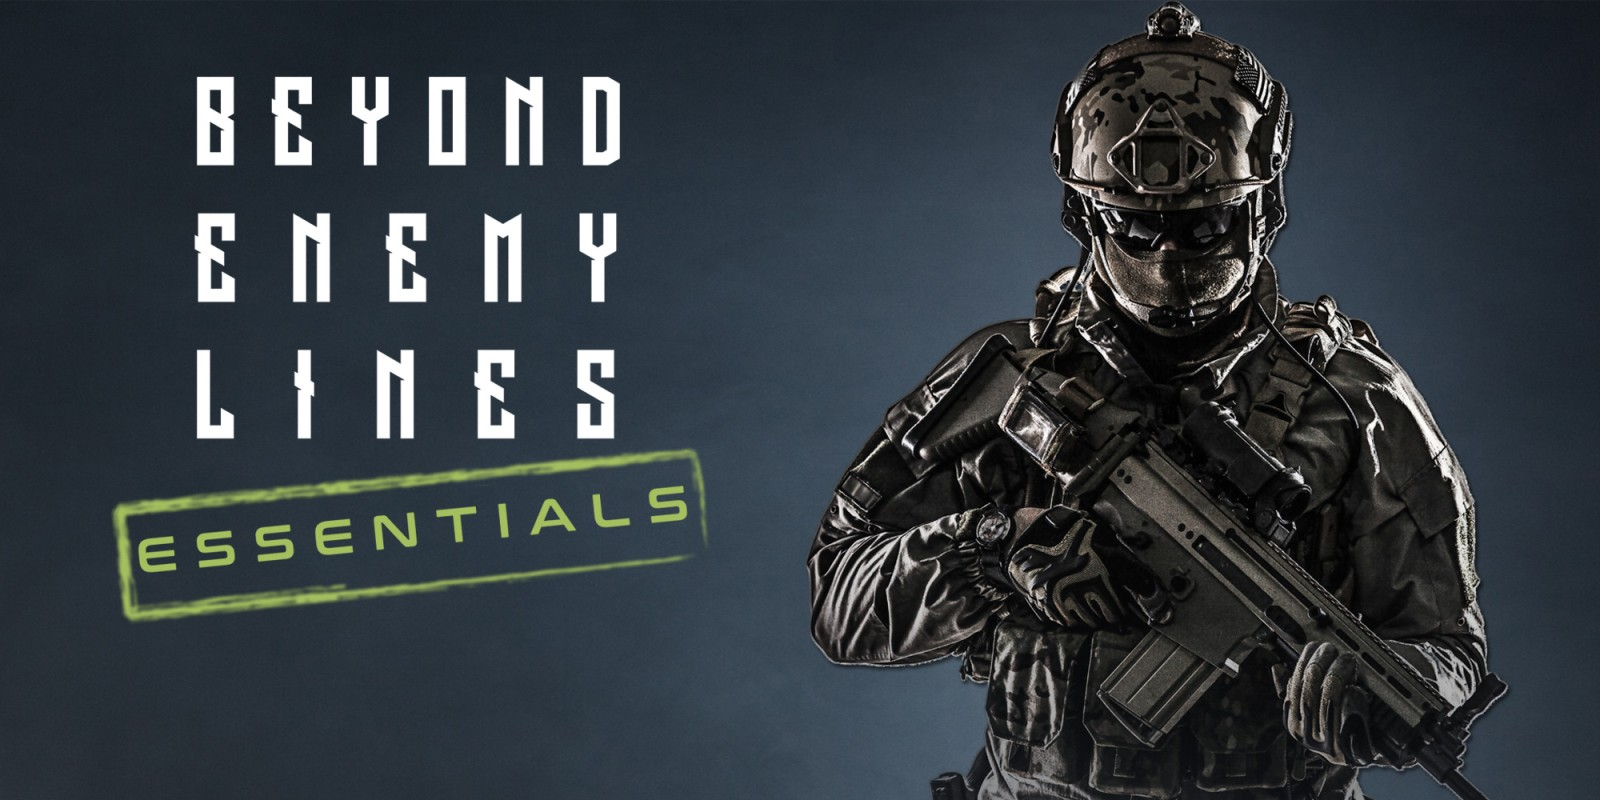 Beyond Enemy Lines: Essentials